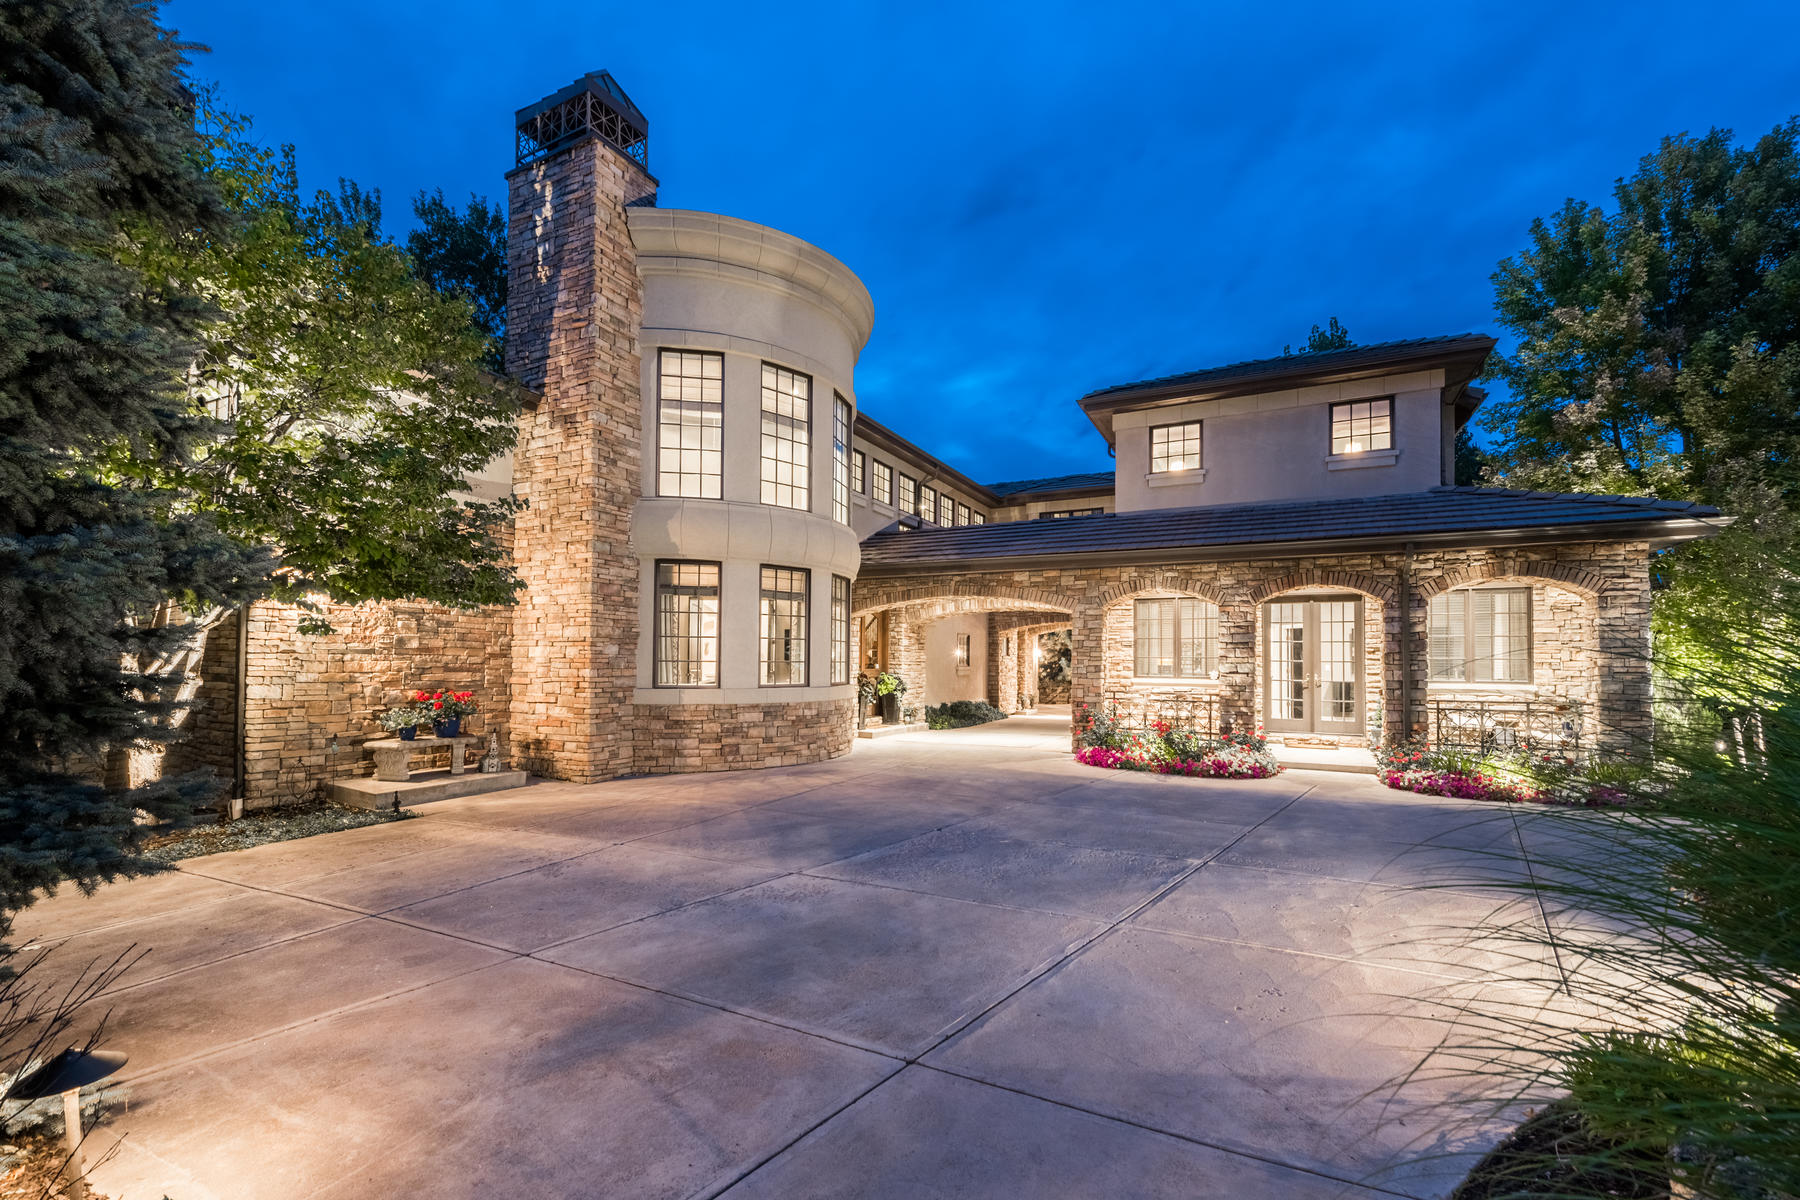 Single Family Home for Active at Nestled within the 24-hour guard gated community of Buell Mansion 1 Ravenswood Rd Cherry Hills Village, Colorado 80113 United States